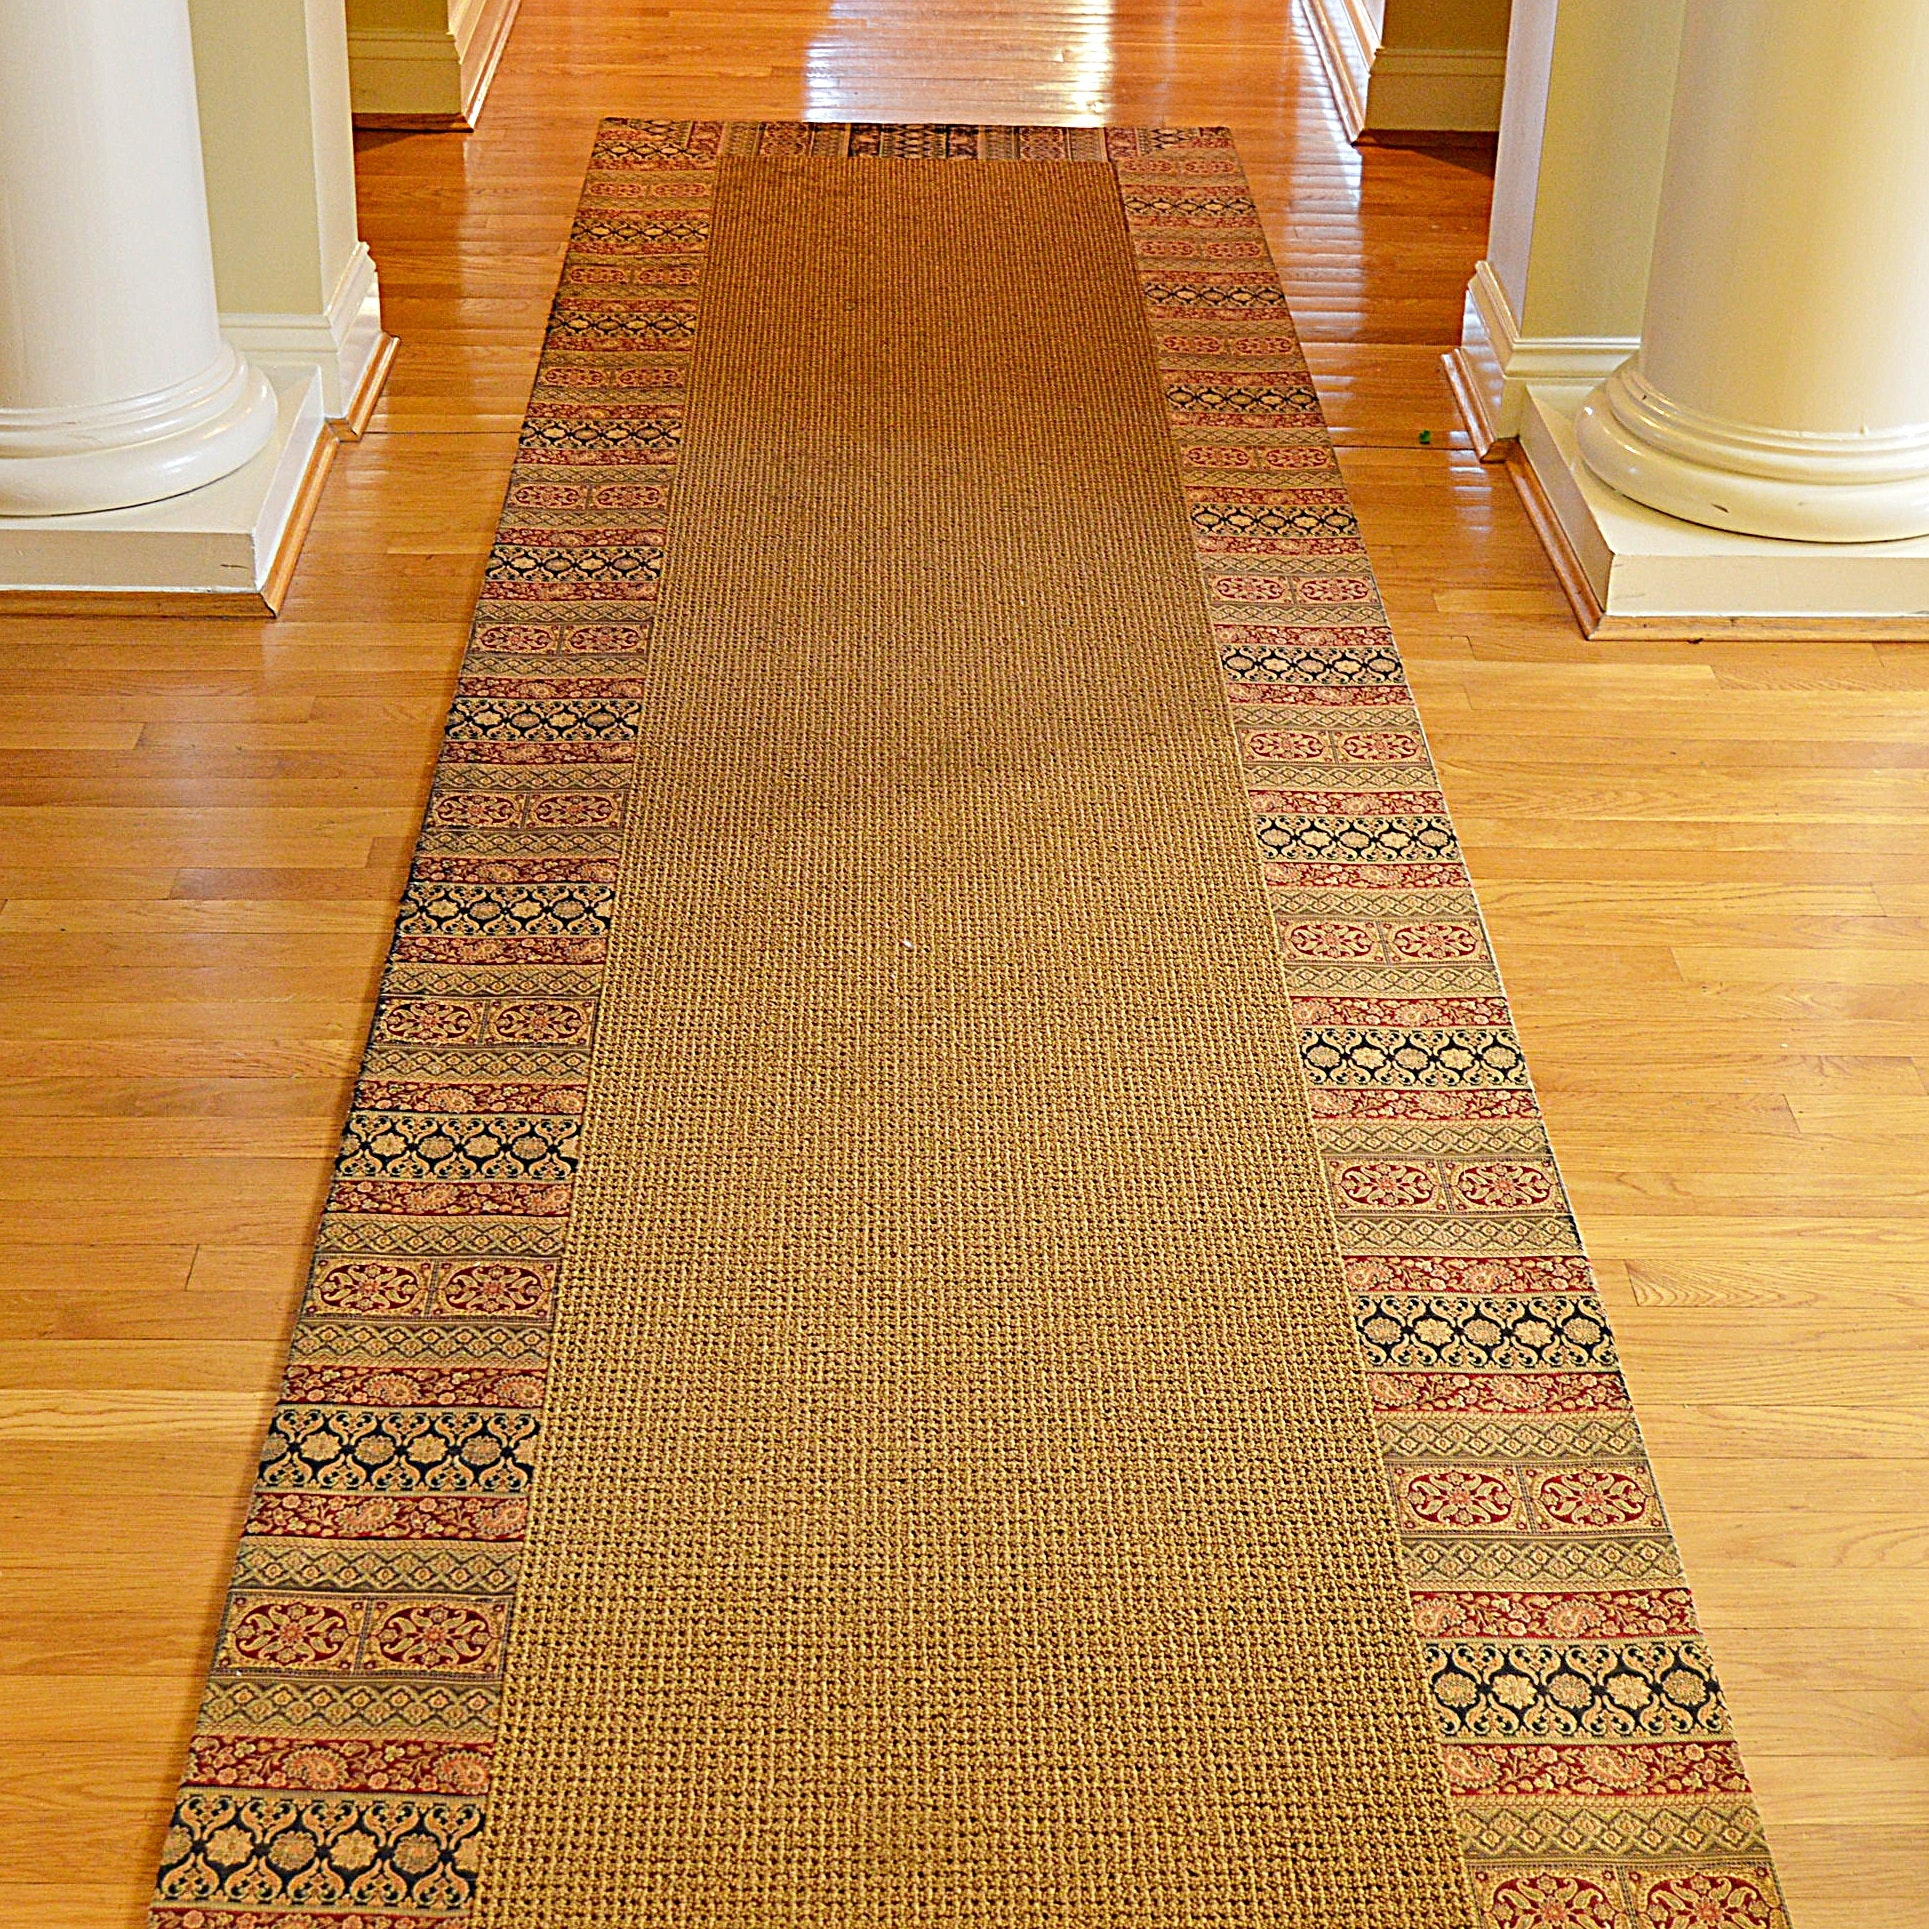 Machine-Woven Runner with Tapestry Border